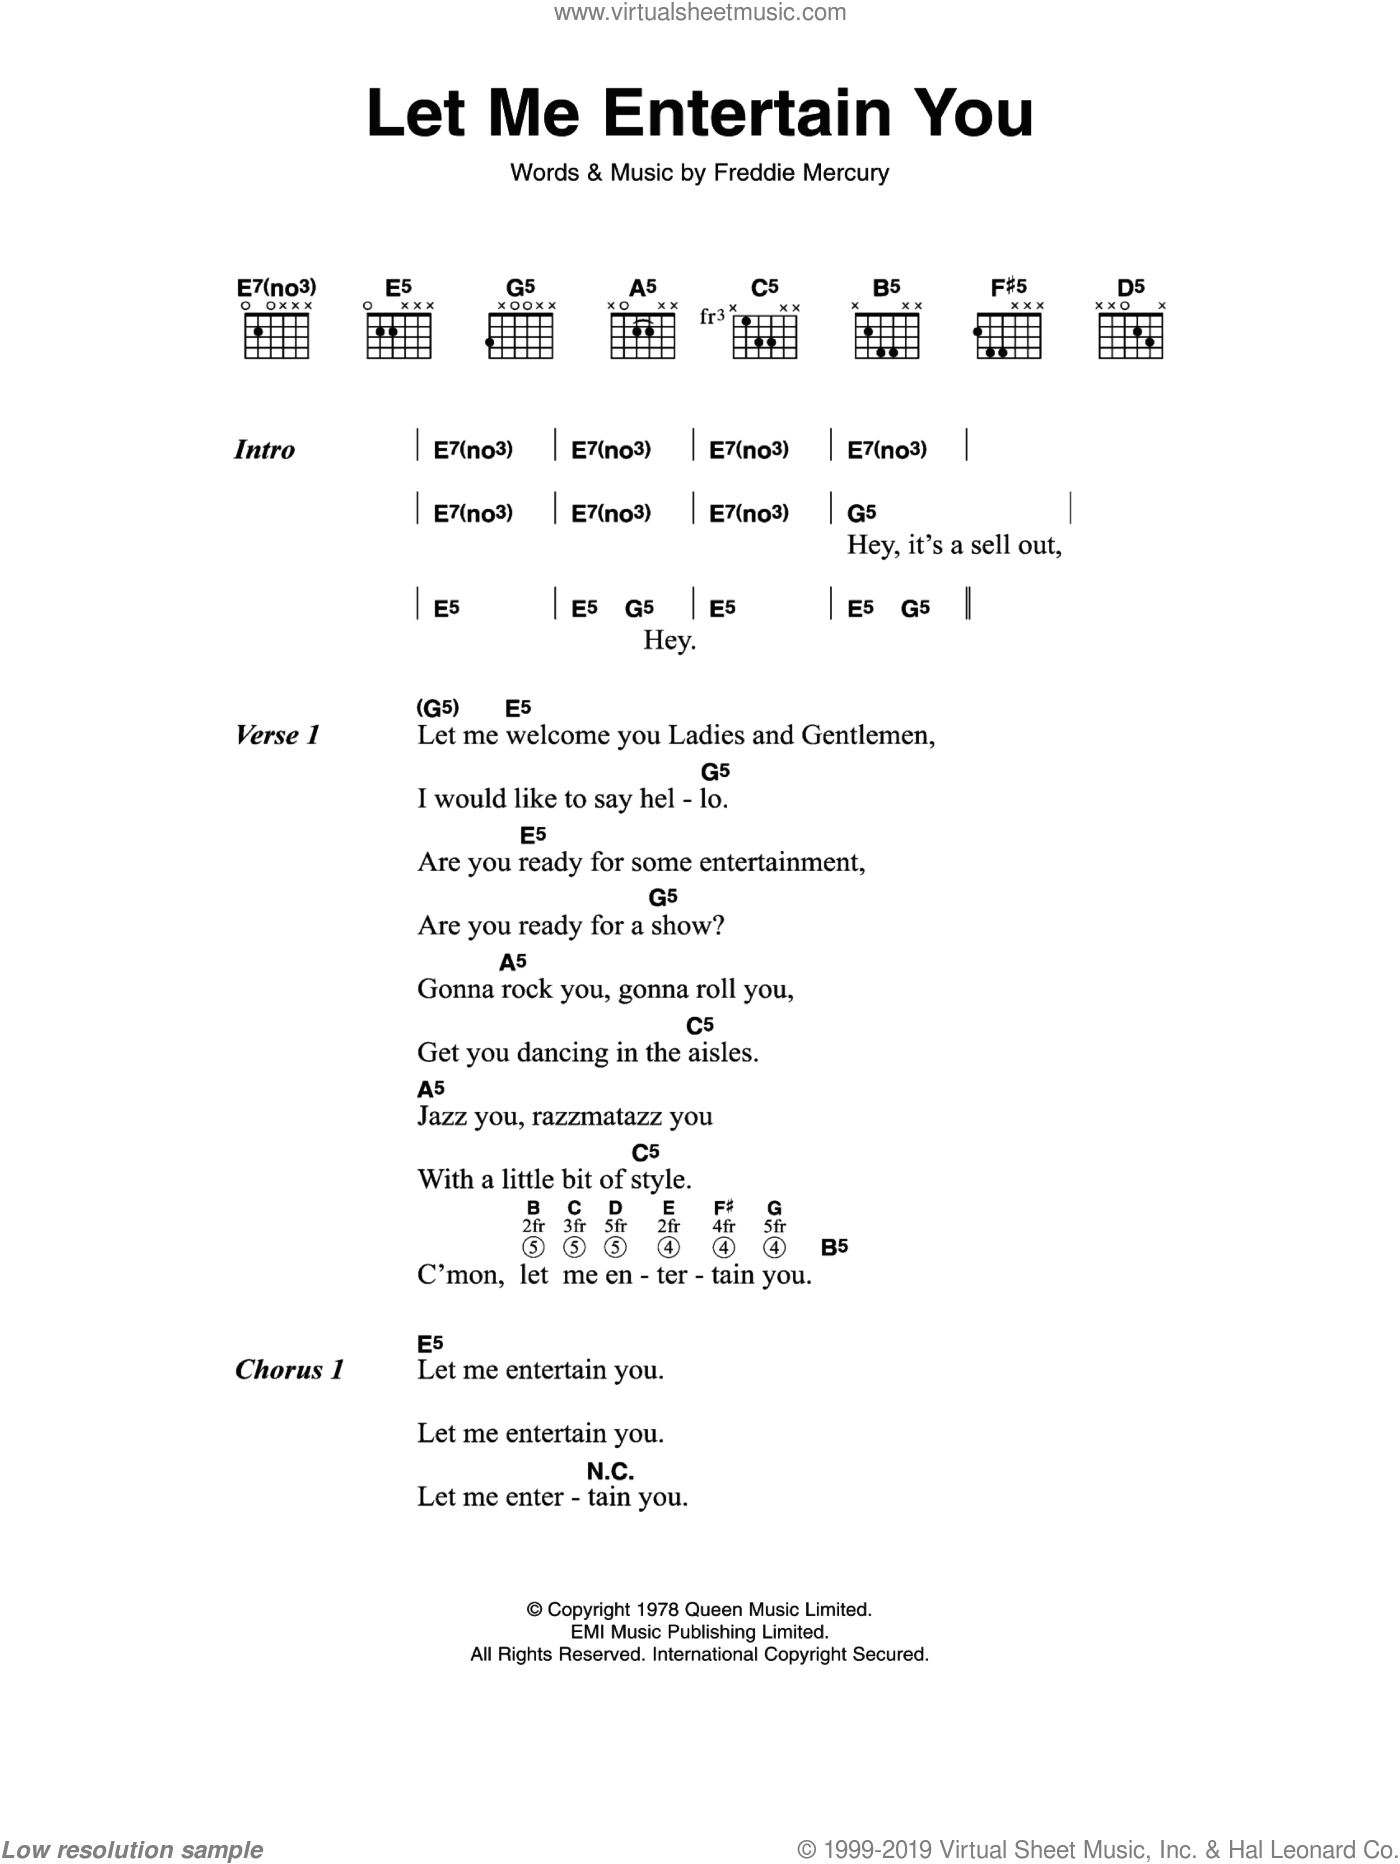 Let Me Entertain You sheet music for guitar (chords) by Queen, intermediate guitar (chords). Score Image Preview.